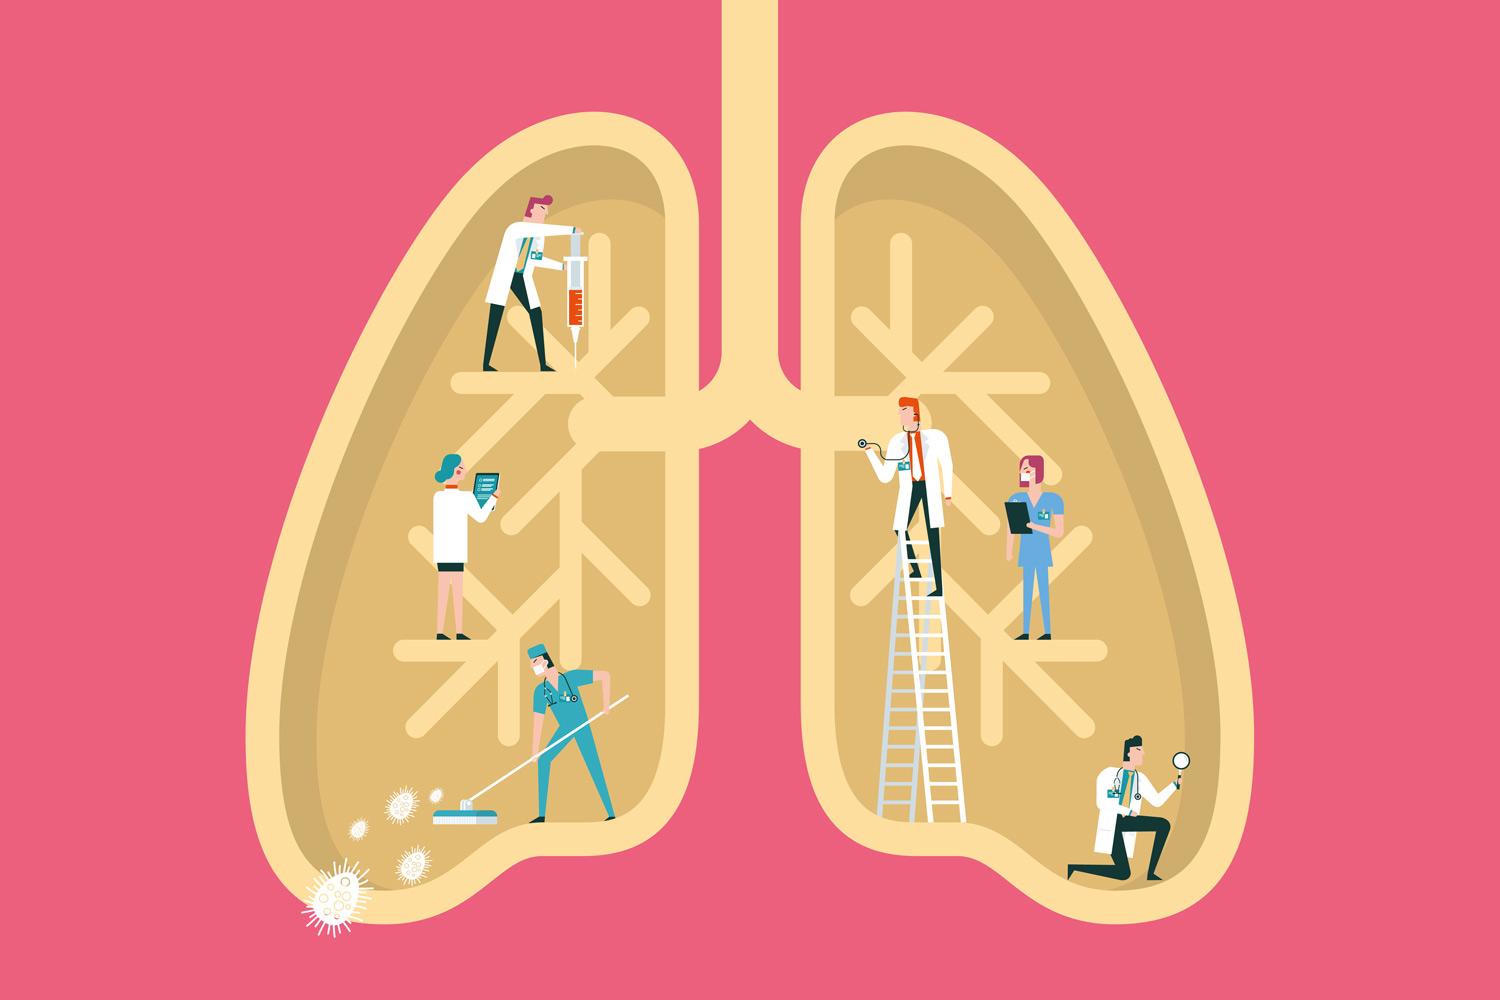 COVID-19 and asthma: What to do if you have asthma during the pandemic